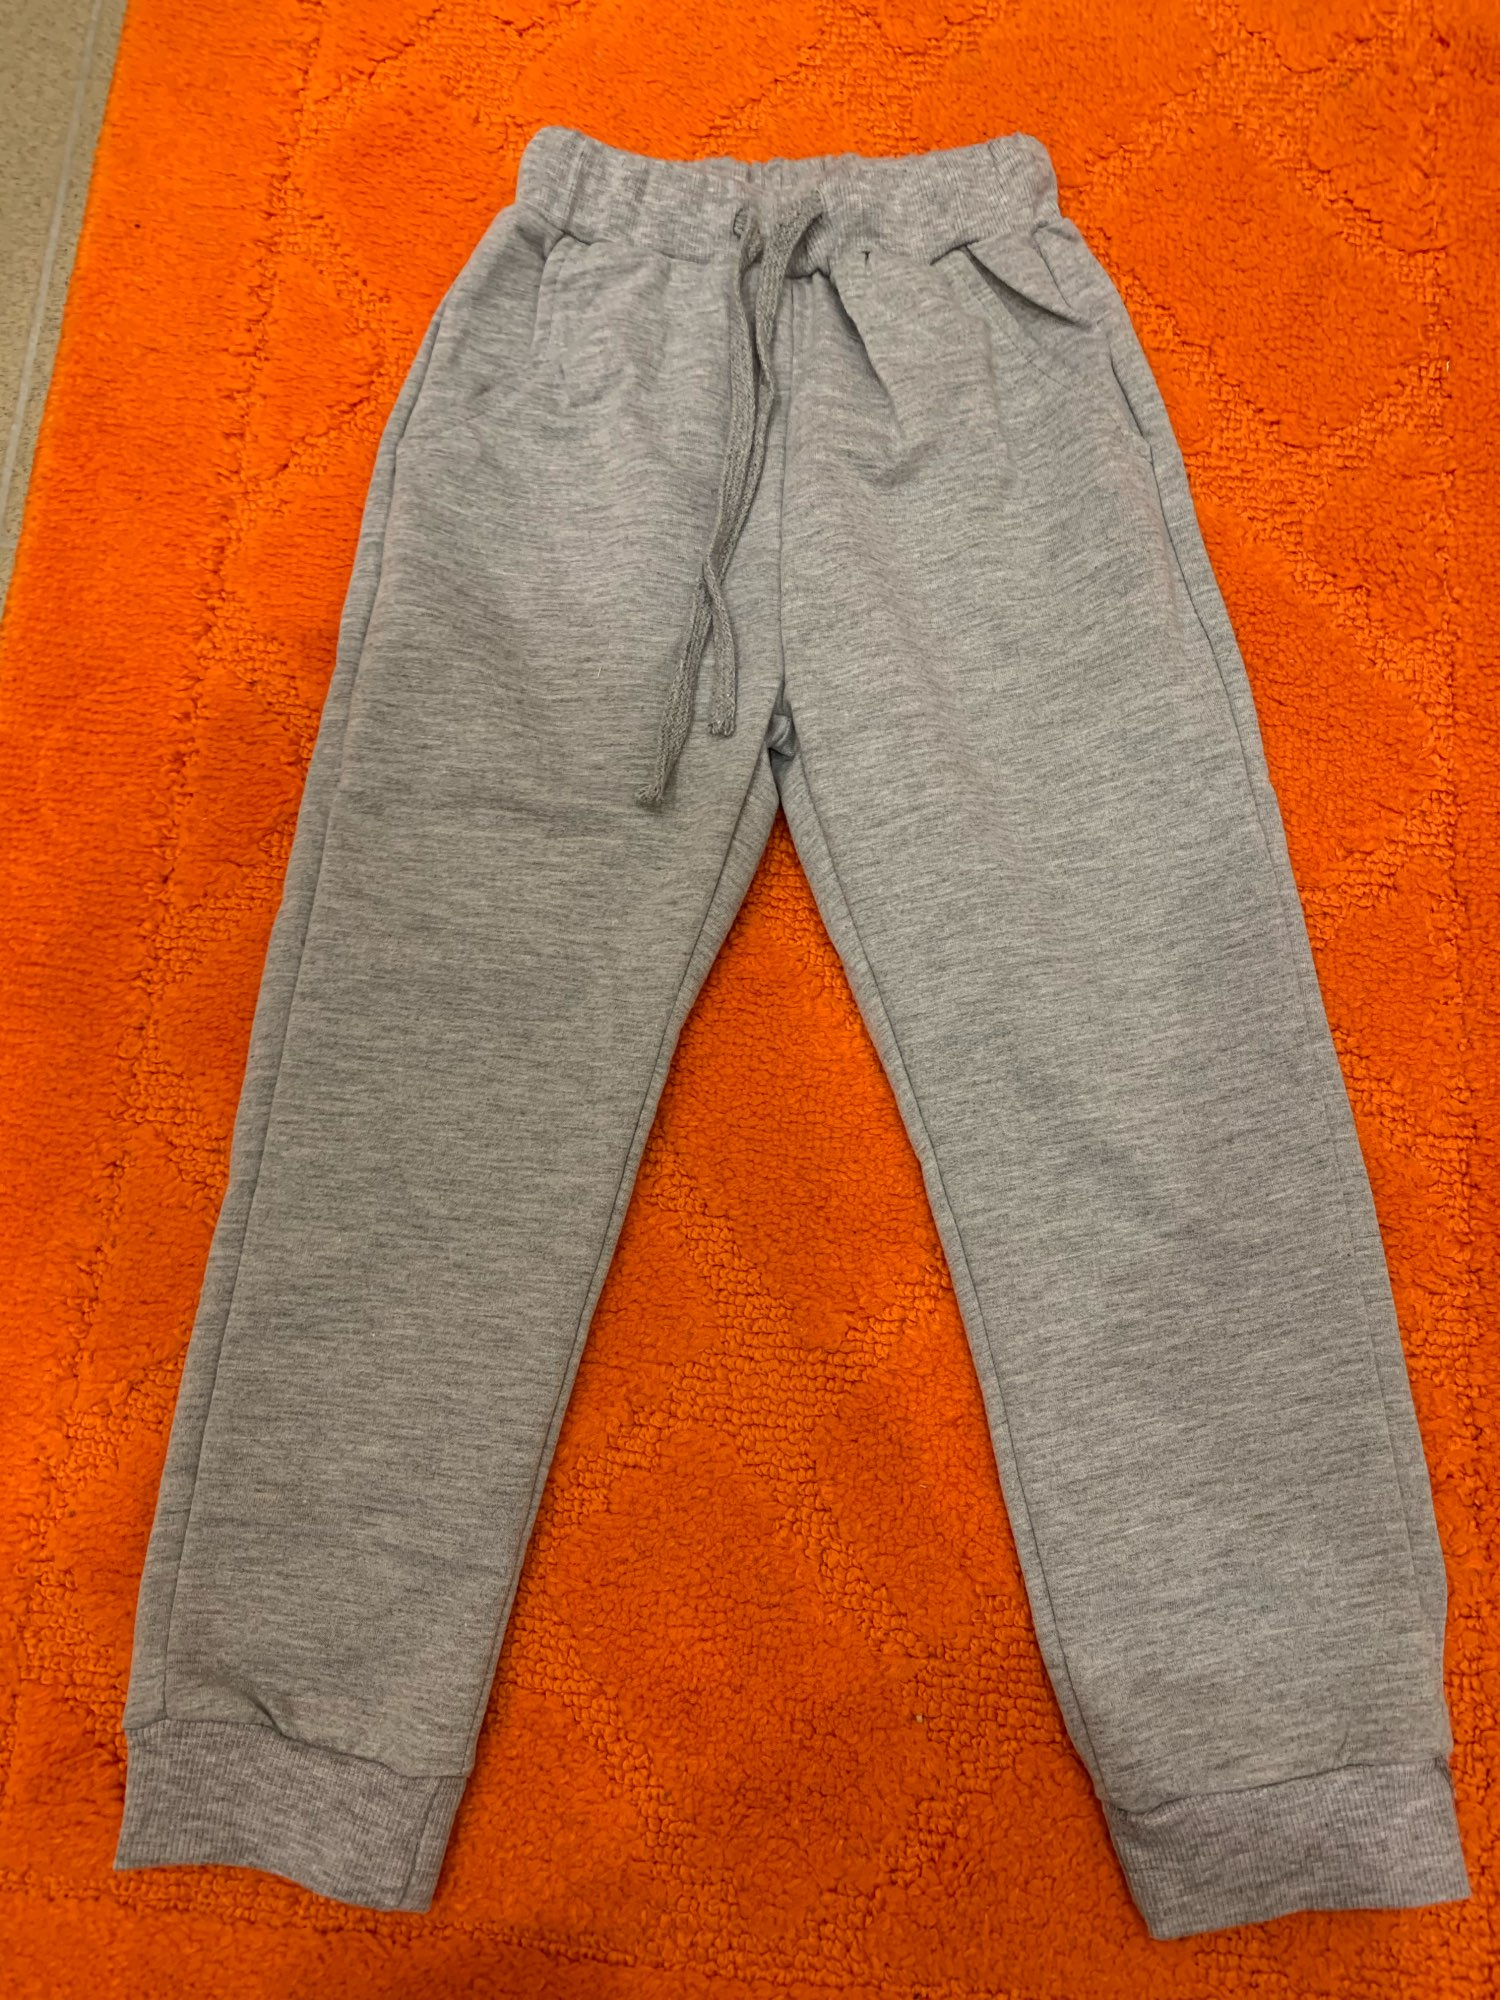 New Retail Sale Cotton Pants For 2-10 Years Old Solid Boys Girls Casual Sport Pants Jogging Enfant Garcon Kids Children Trousers photo review